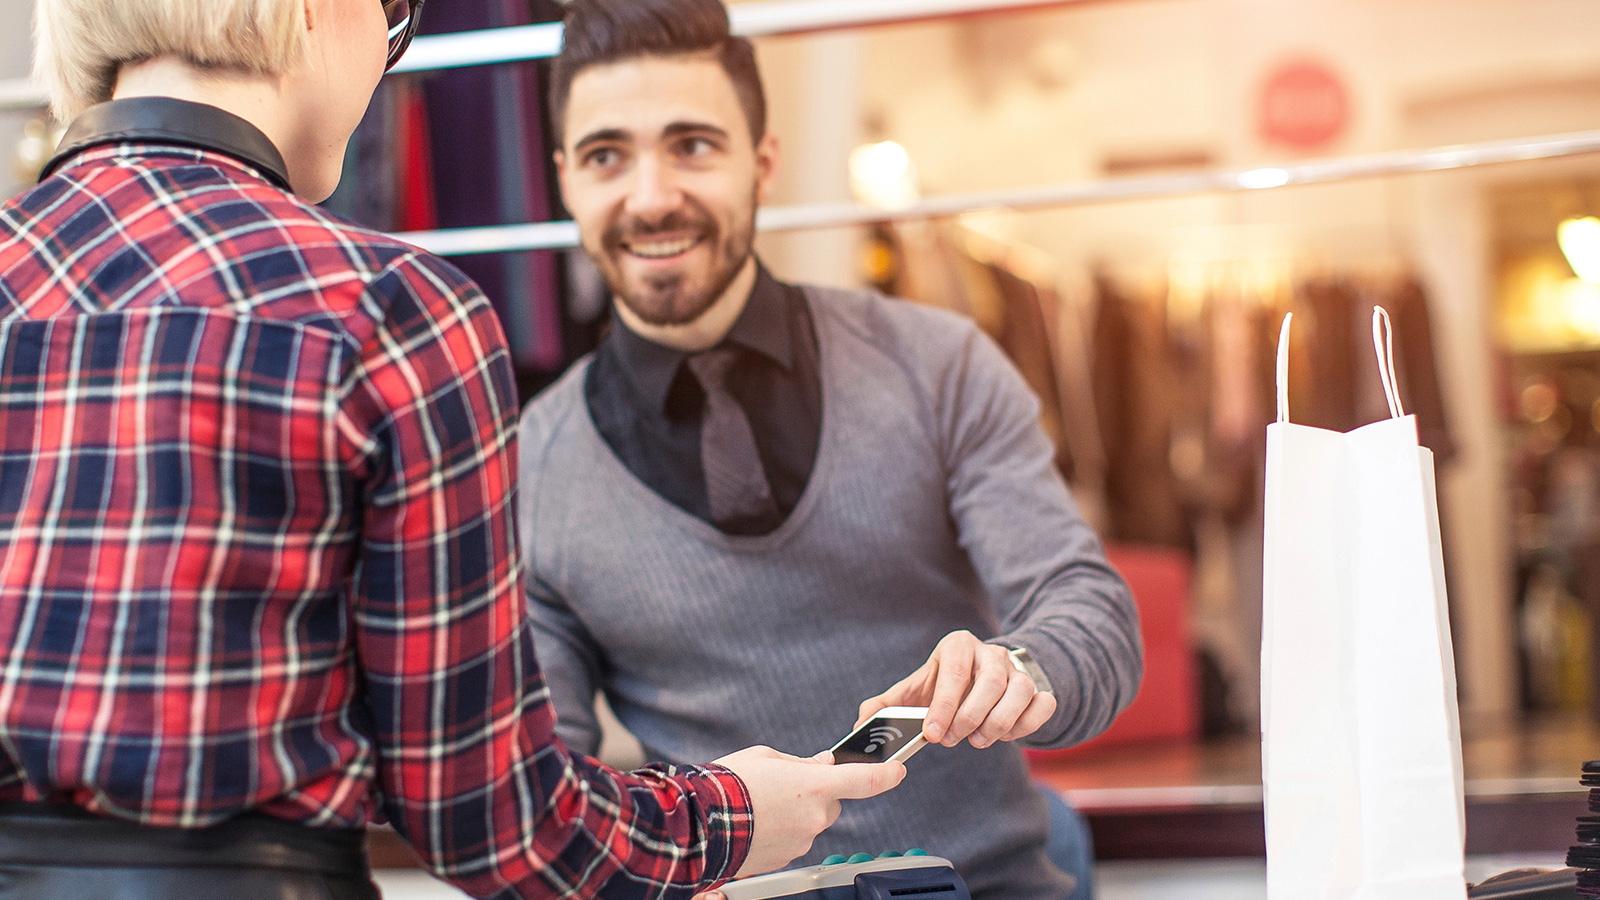 A sales person assisting with a contactless transaction by showing a customer where to hover a mobile phone.